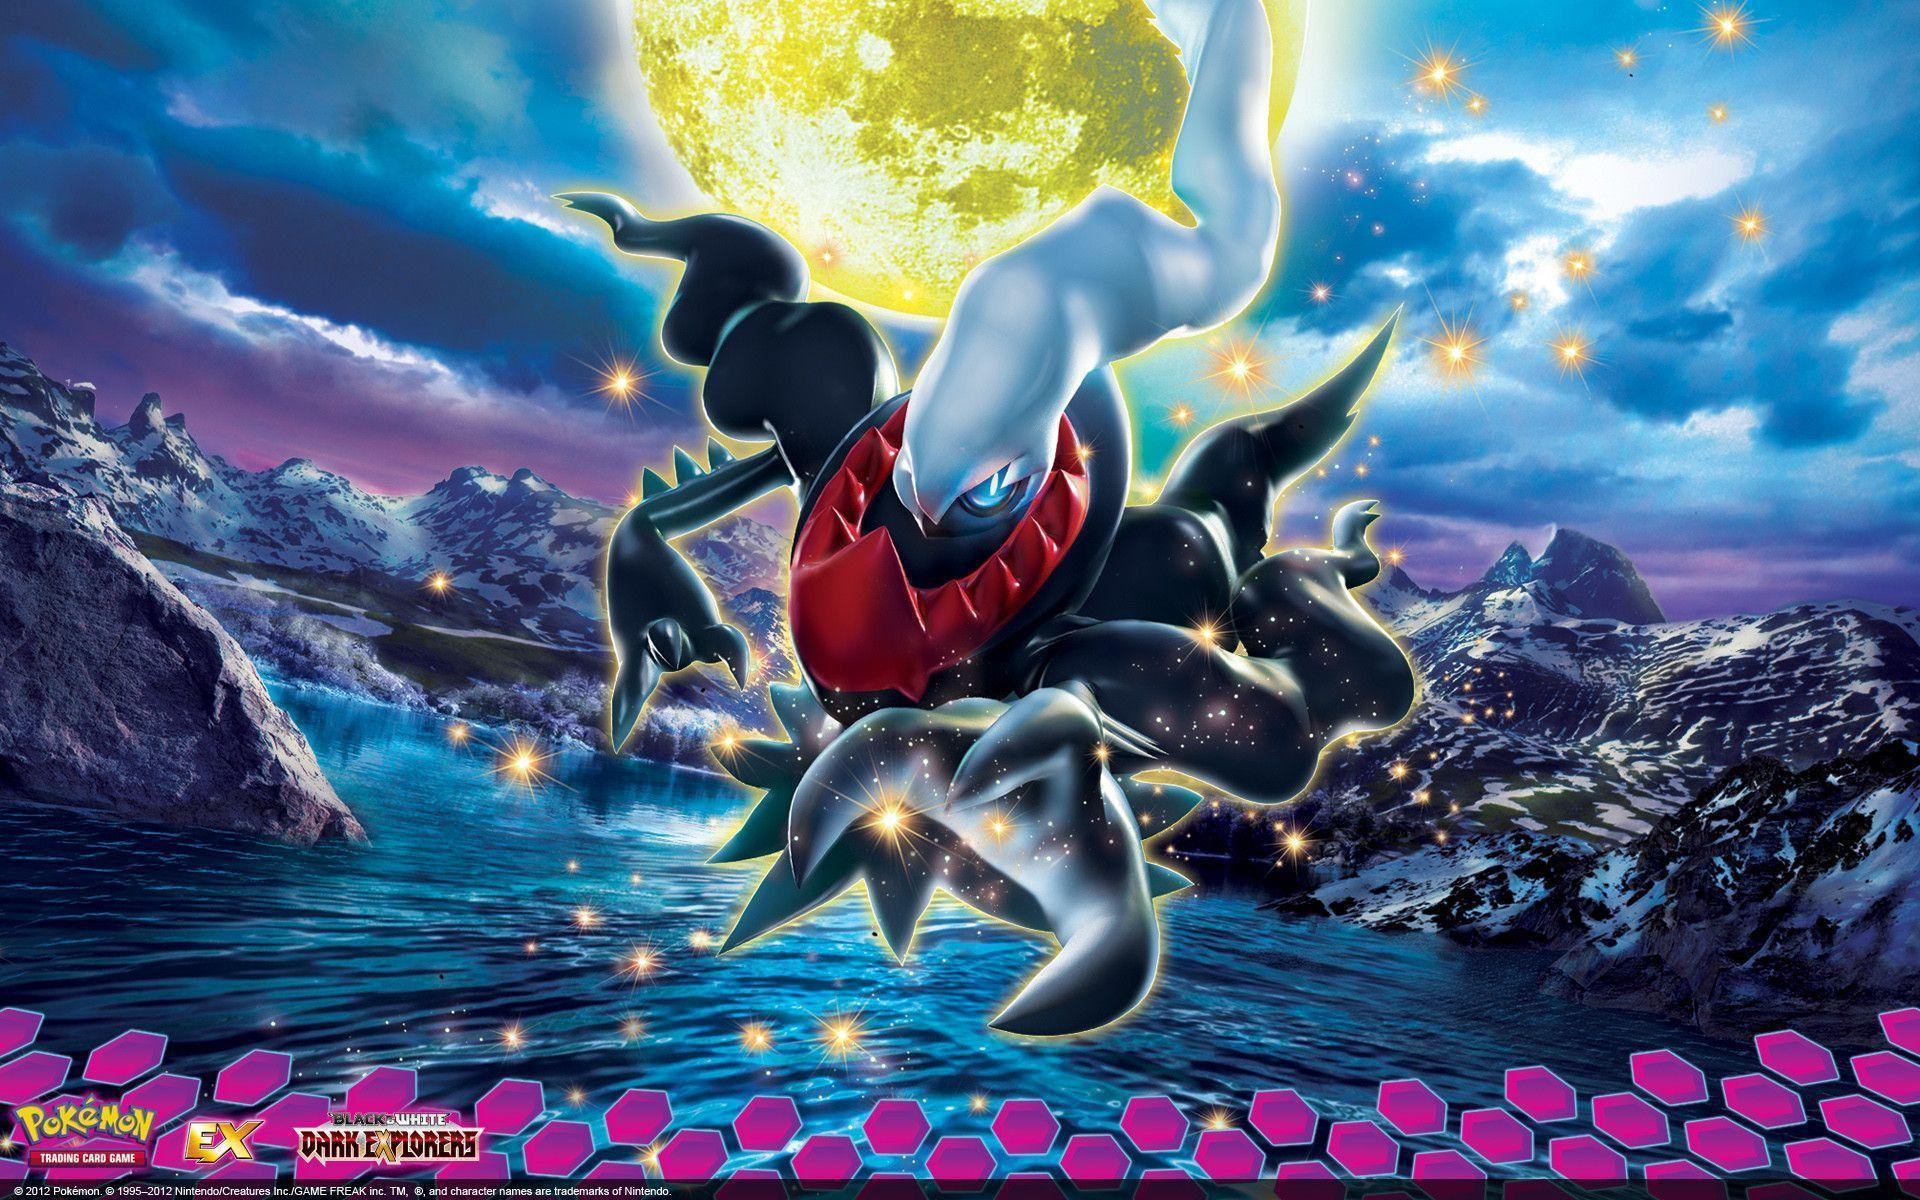 Pokemon TCG Wallpapers - Wallpaper Cave